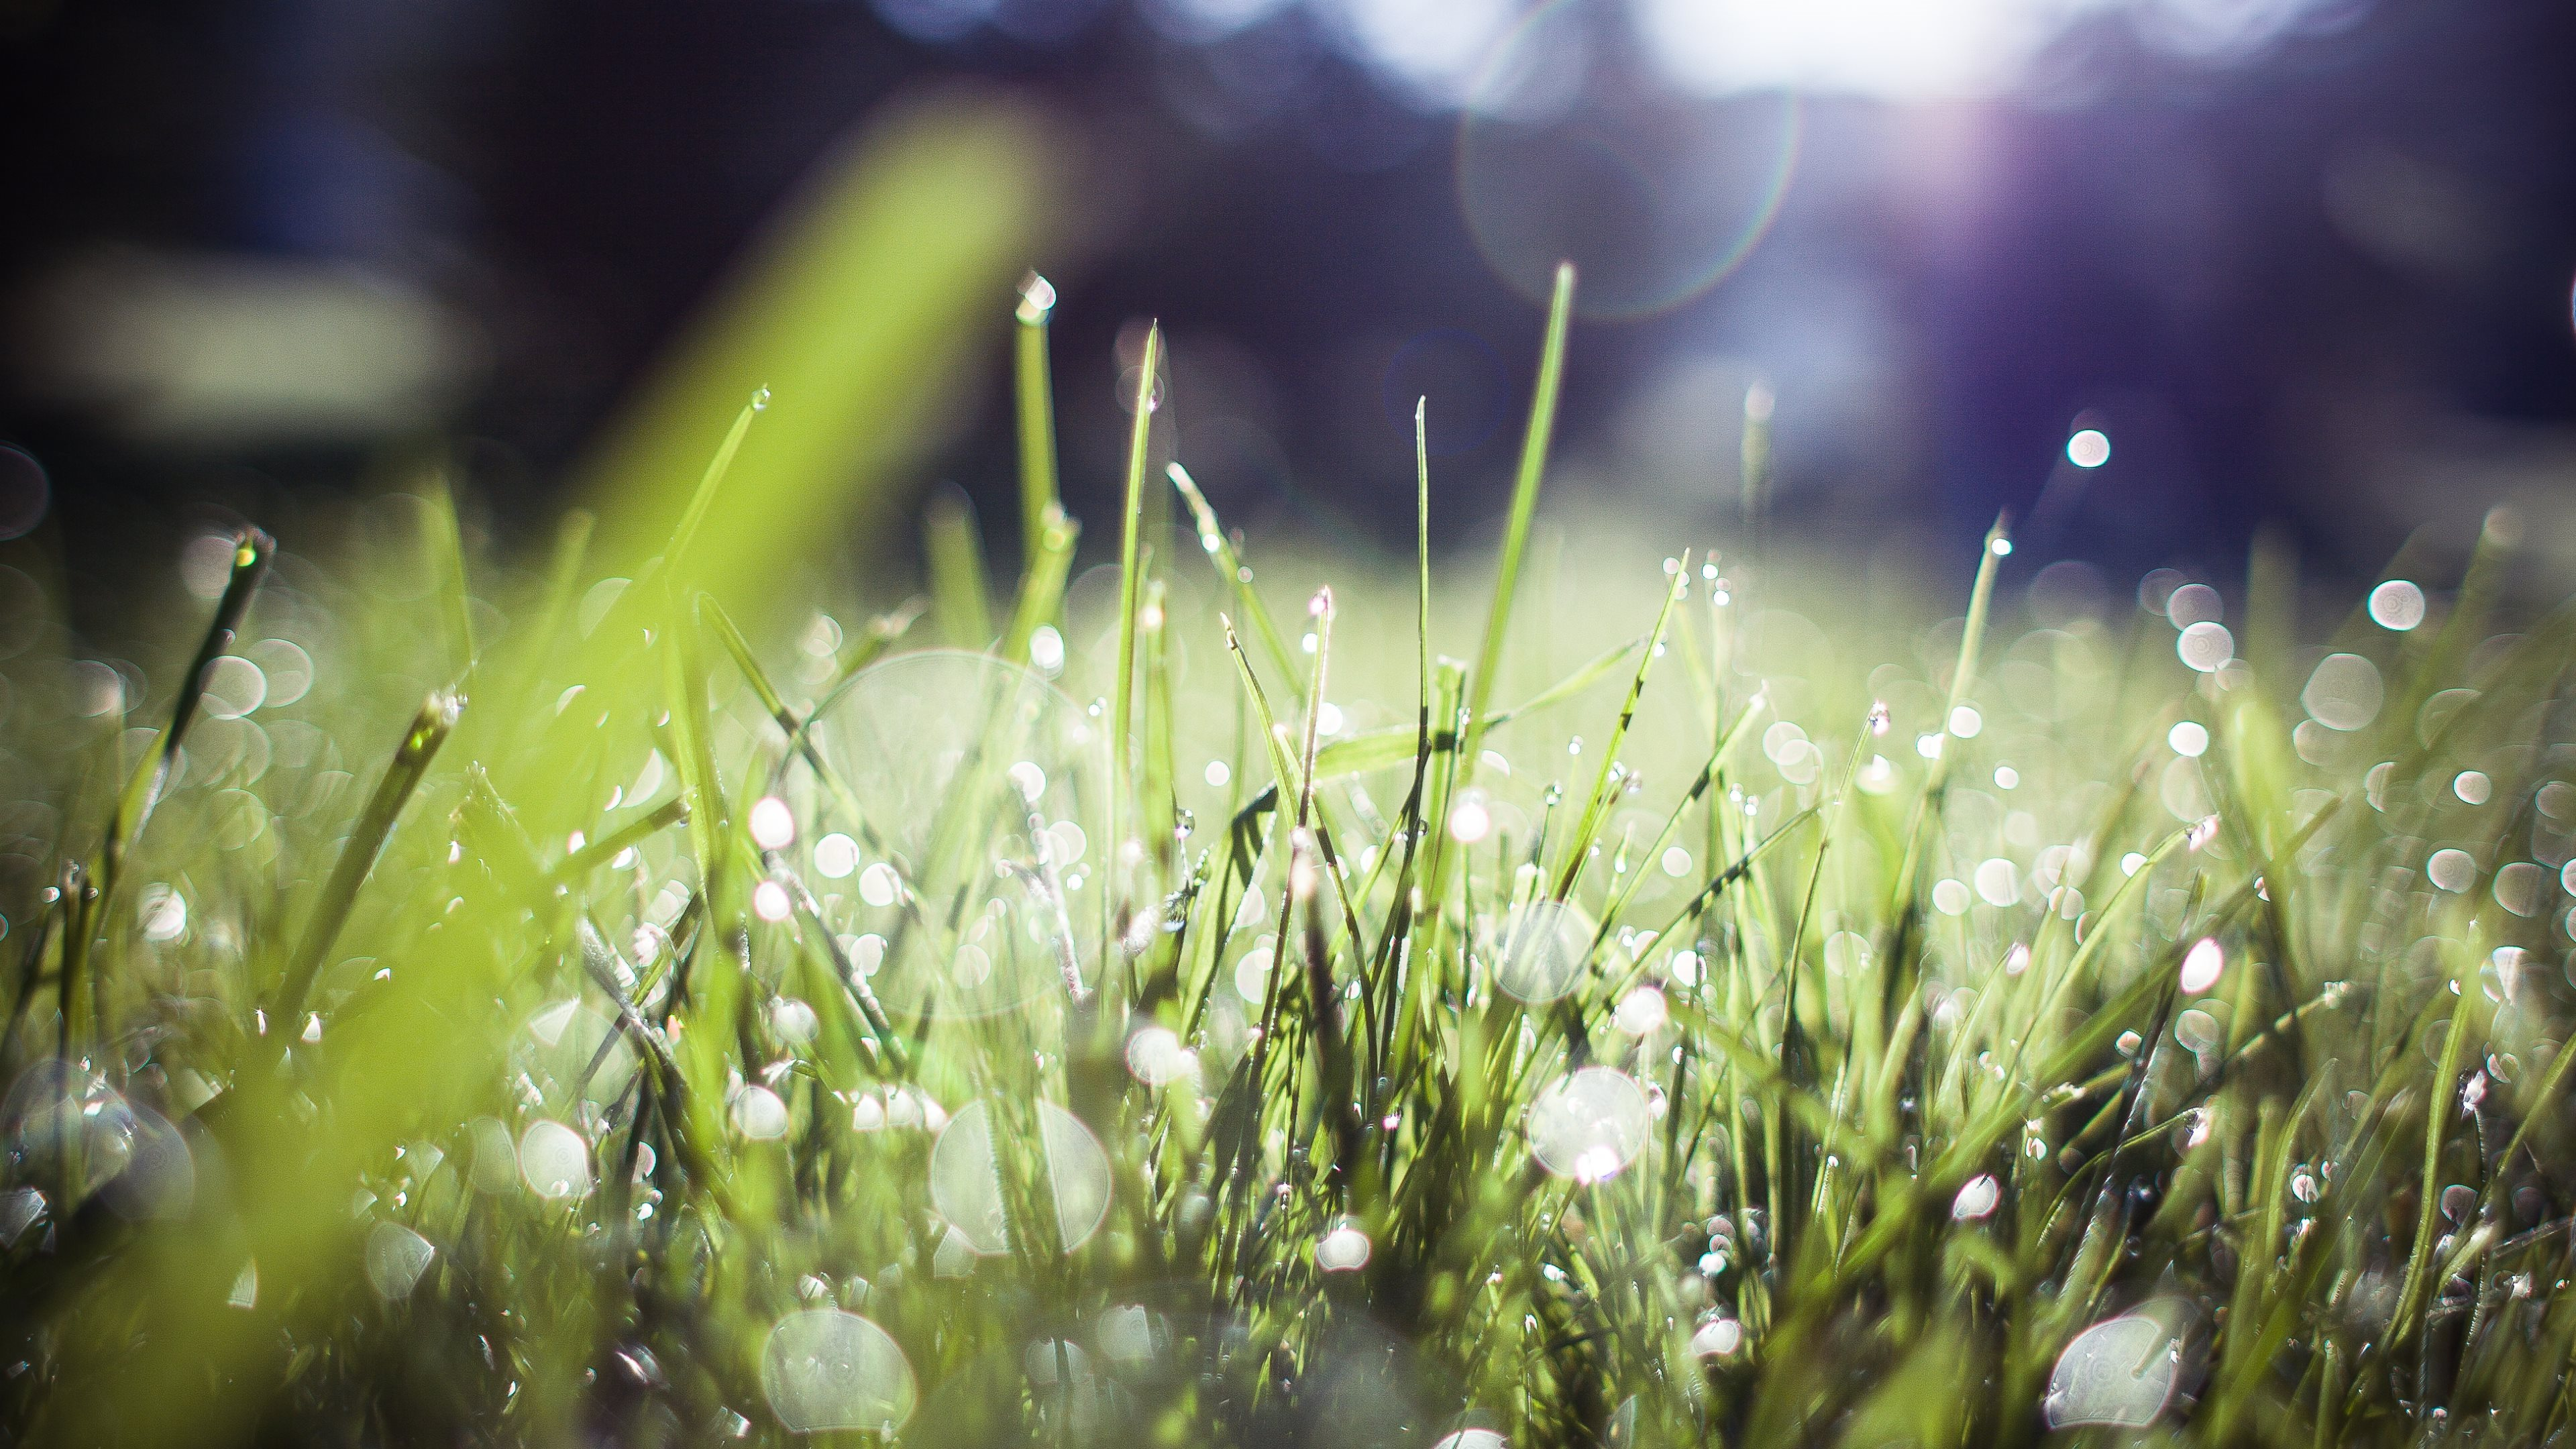 4k morning dew wallpapers high quality | download free